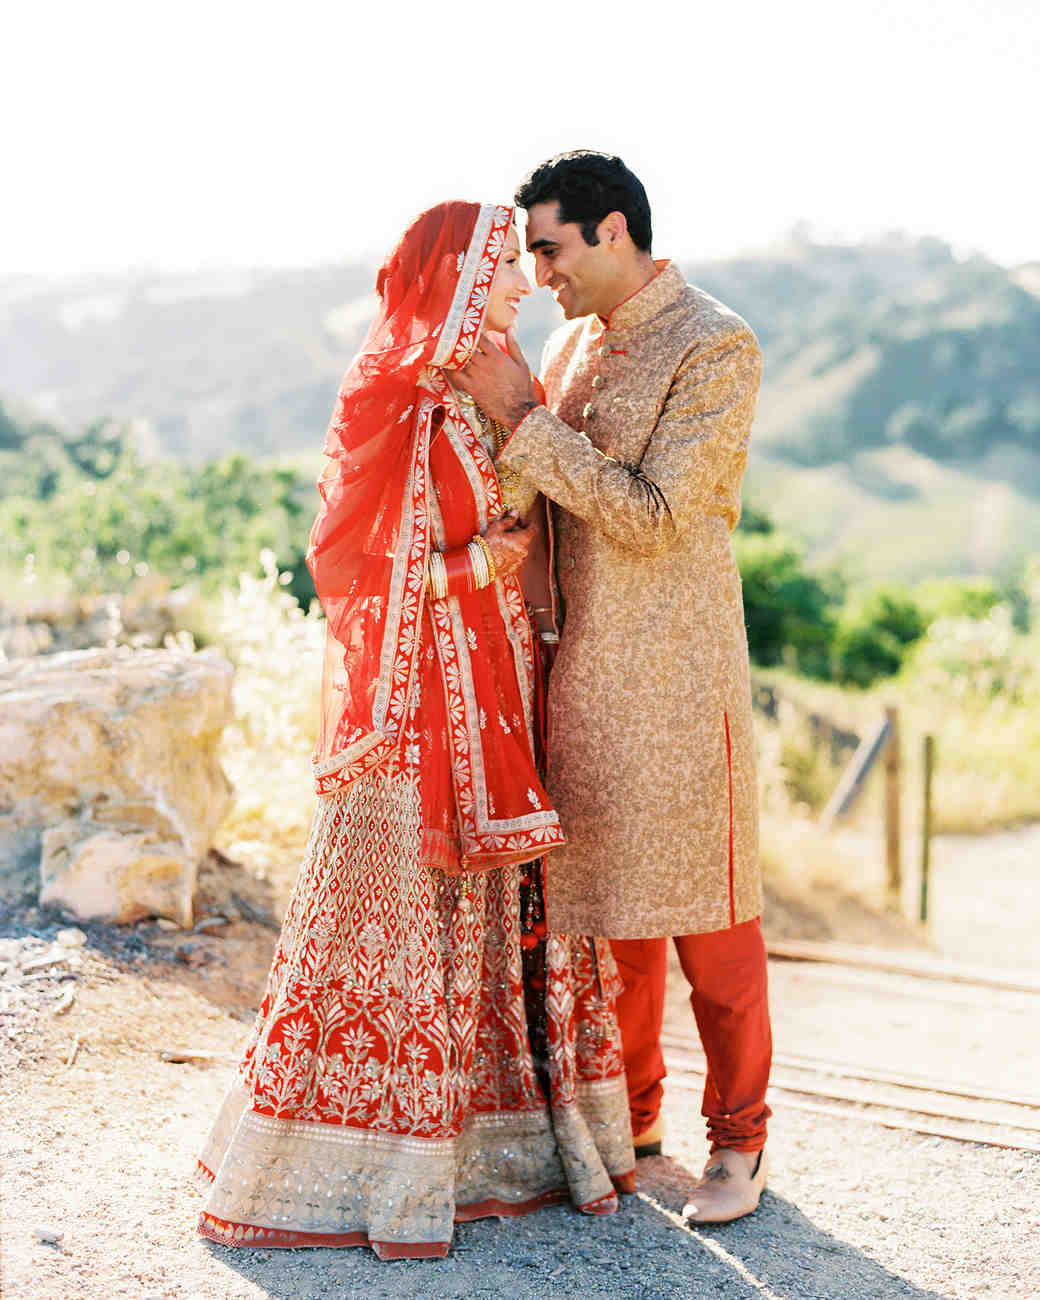 c7ec3678e46 An Elegant Two-Day Wedding in California with Both an Indian and a Western  Ceremony